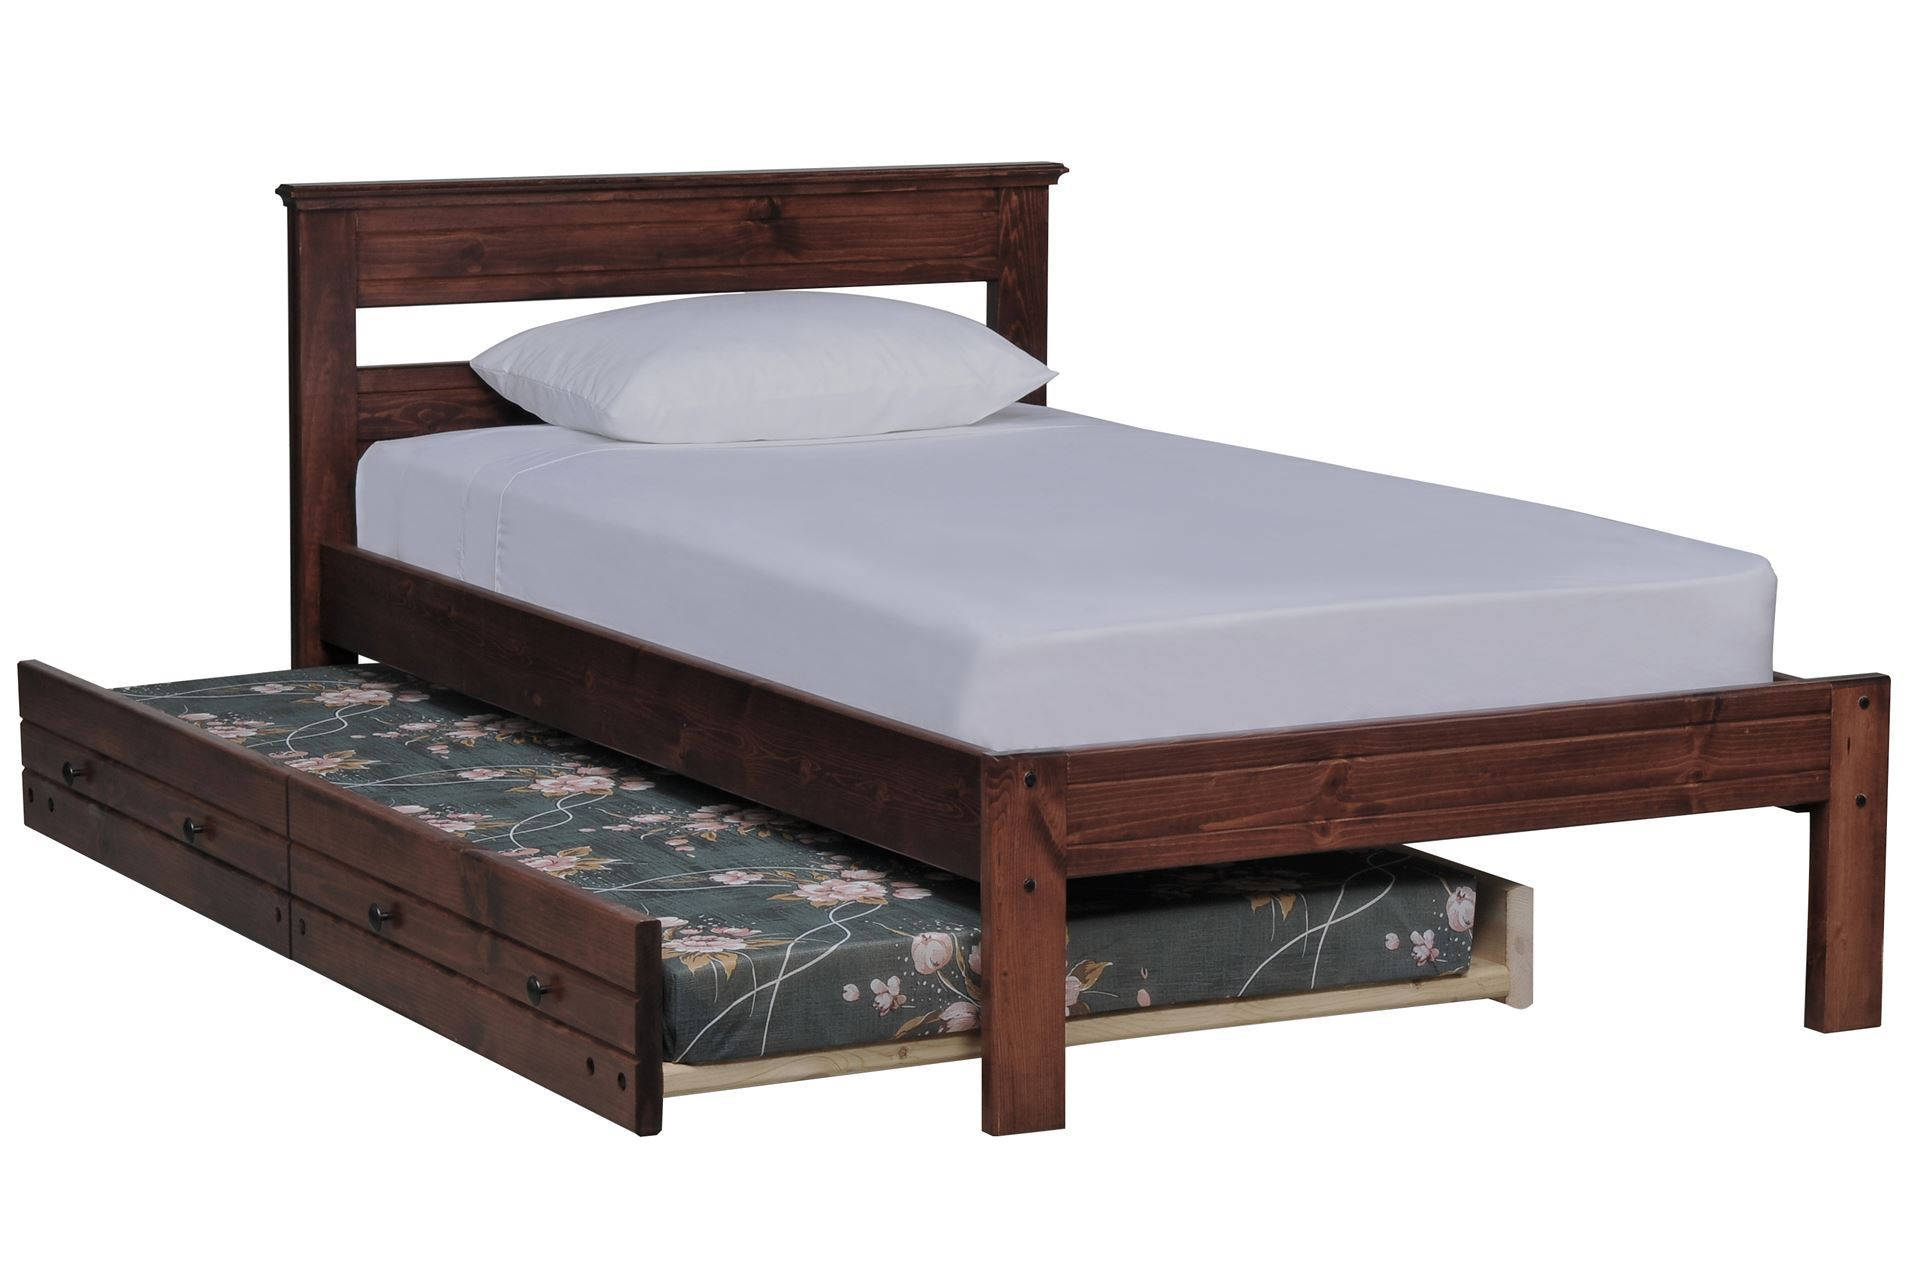 sedona full platform bed w trundle mattress living spaces 16773 | image ashx id 83650 type product name 83650 2 tn 2